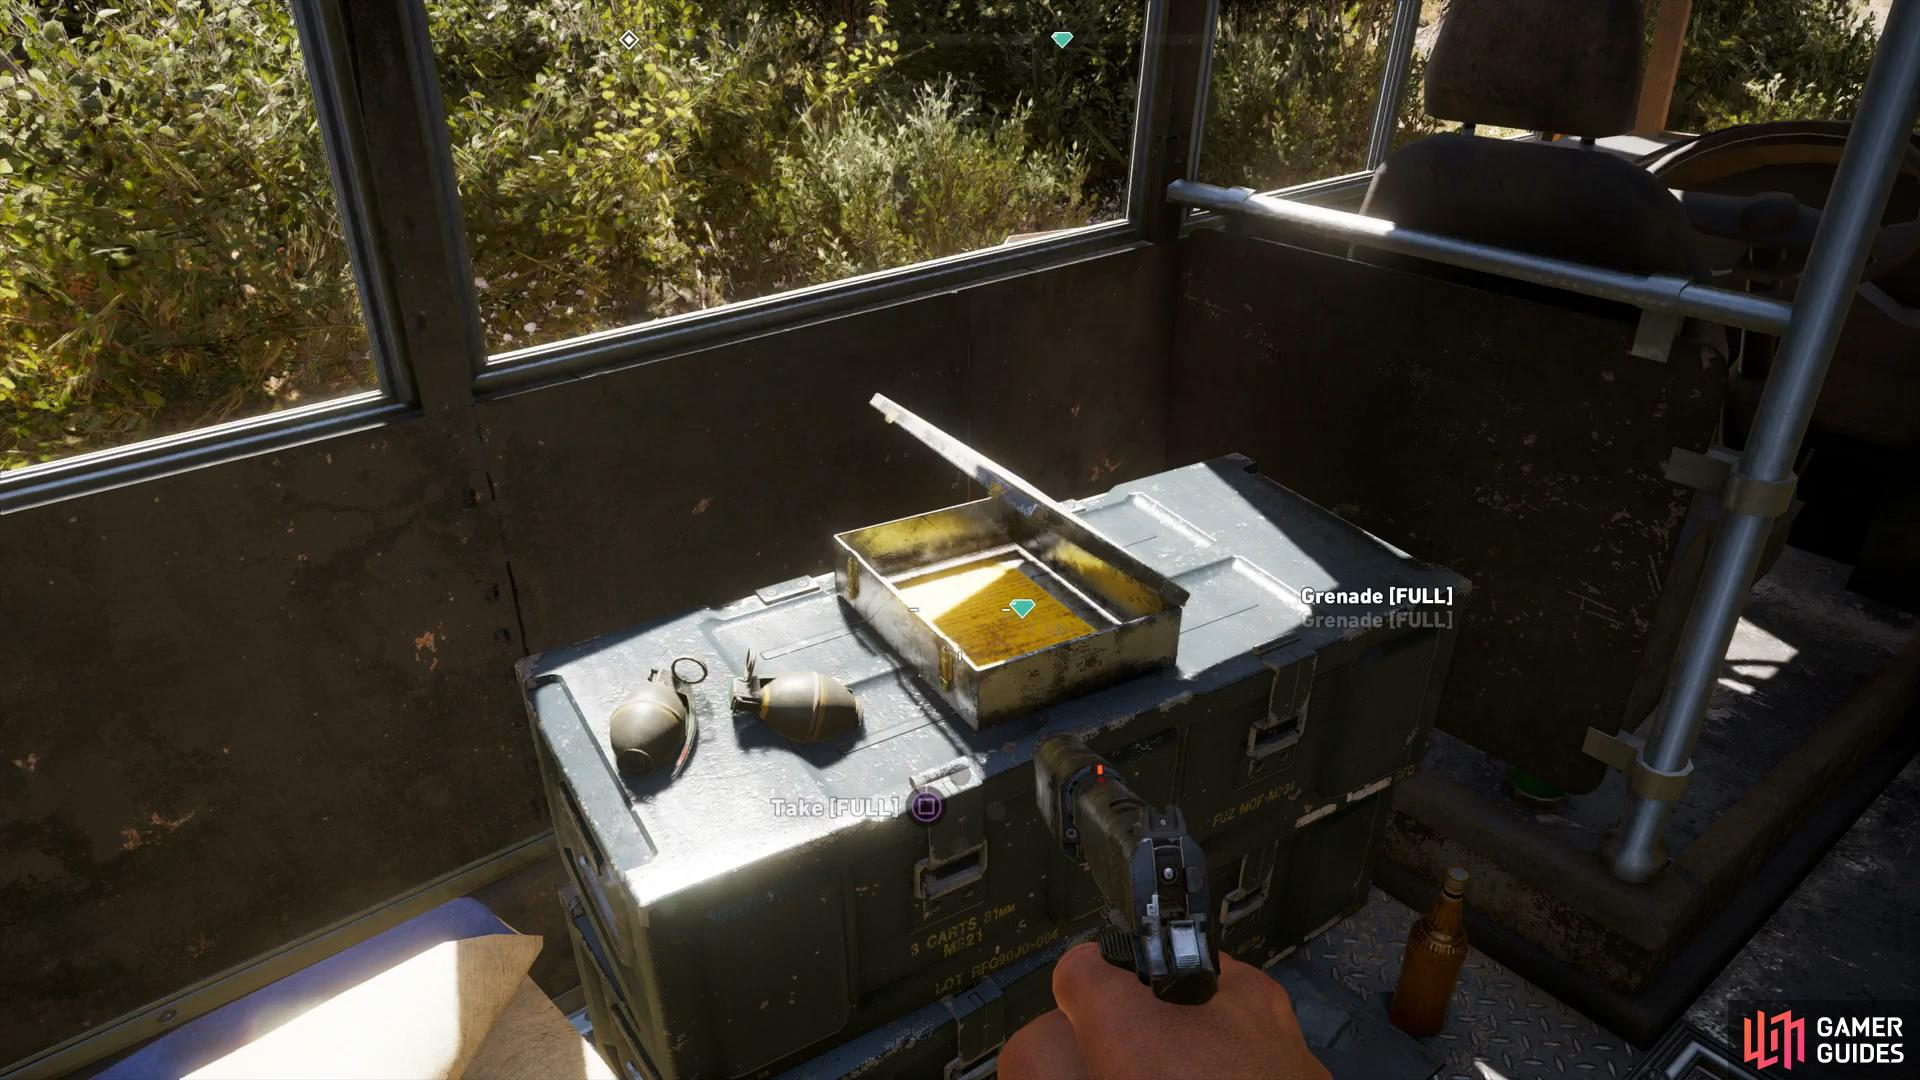 the Prepper note is inside the bus itself